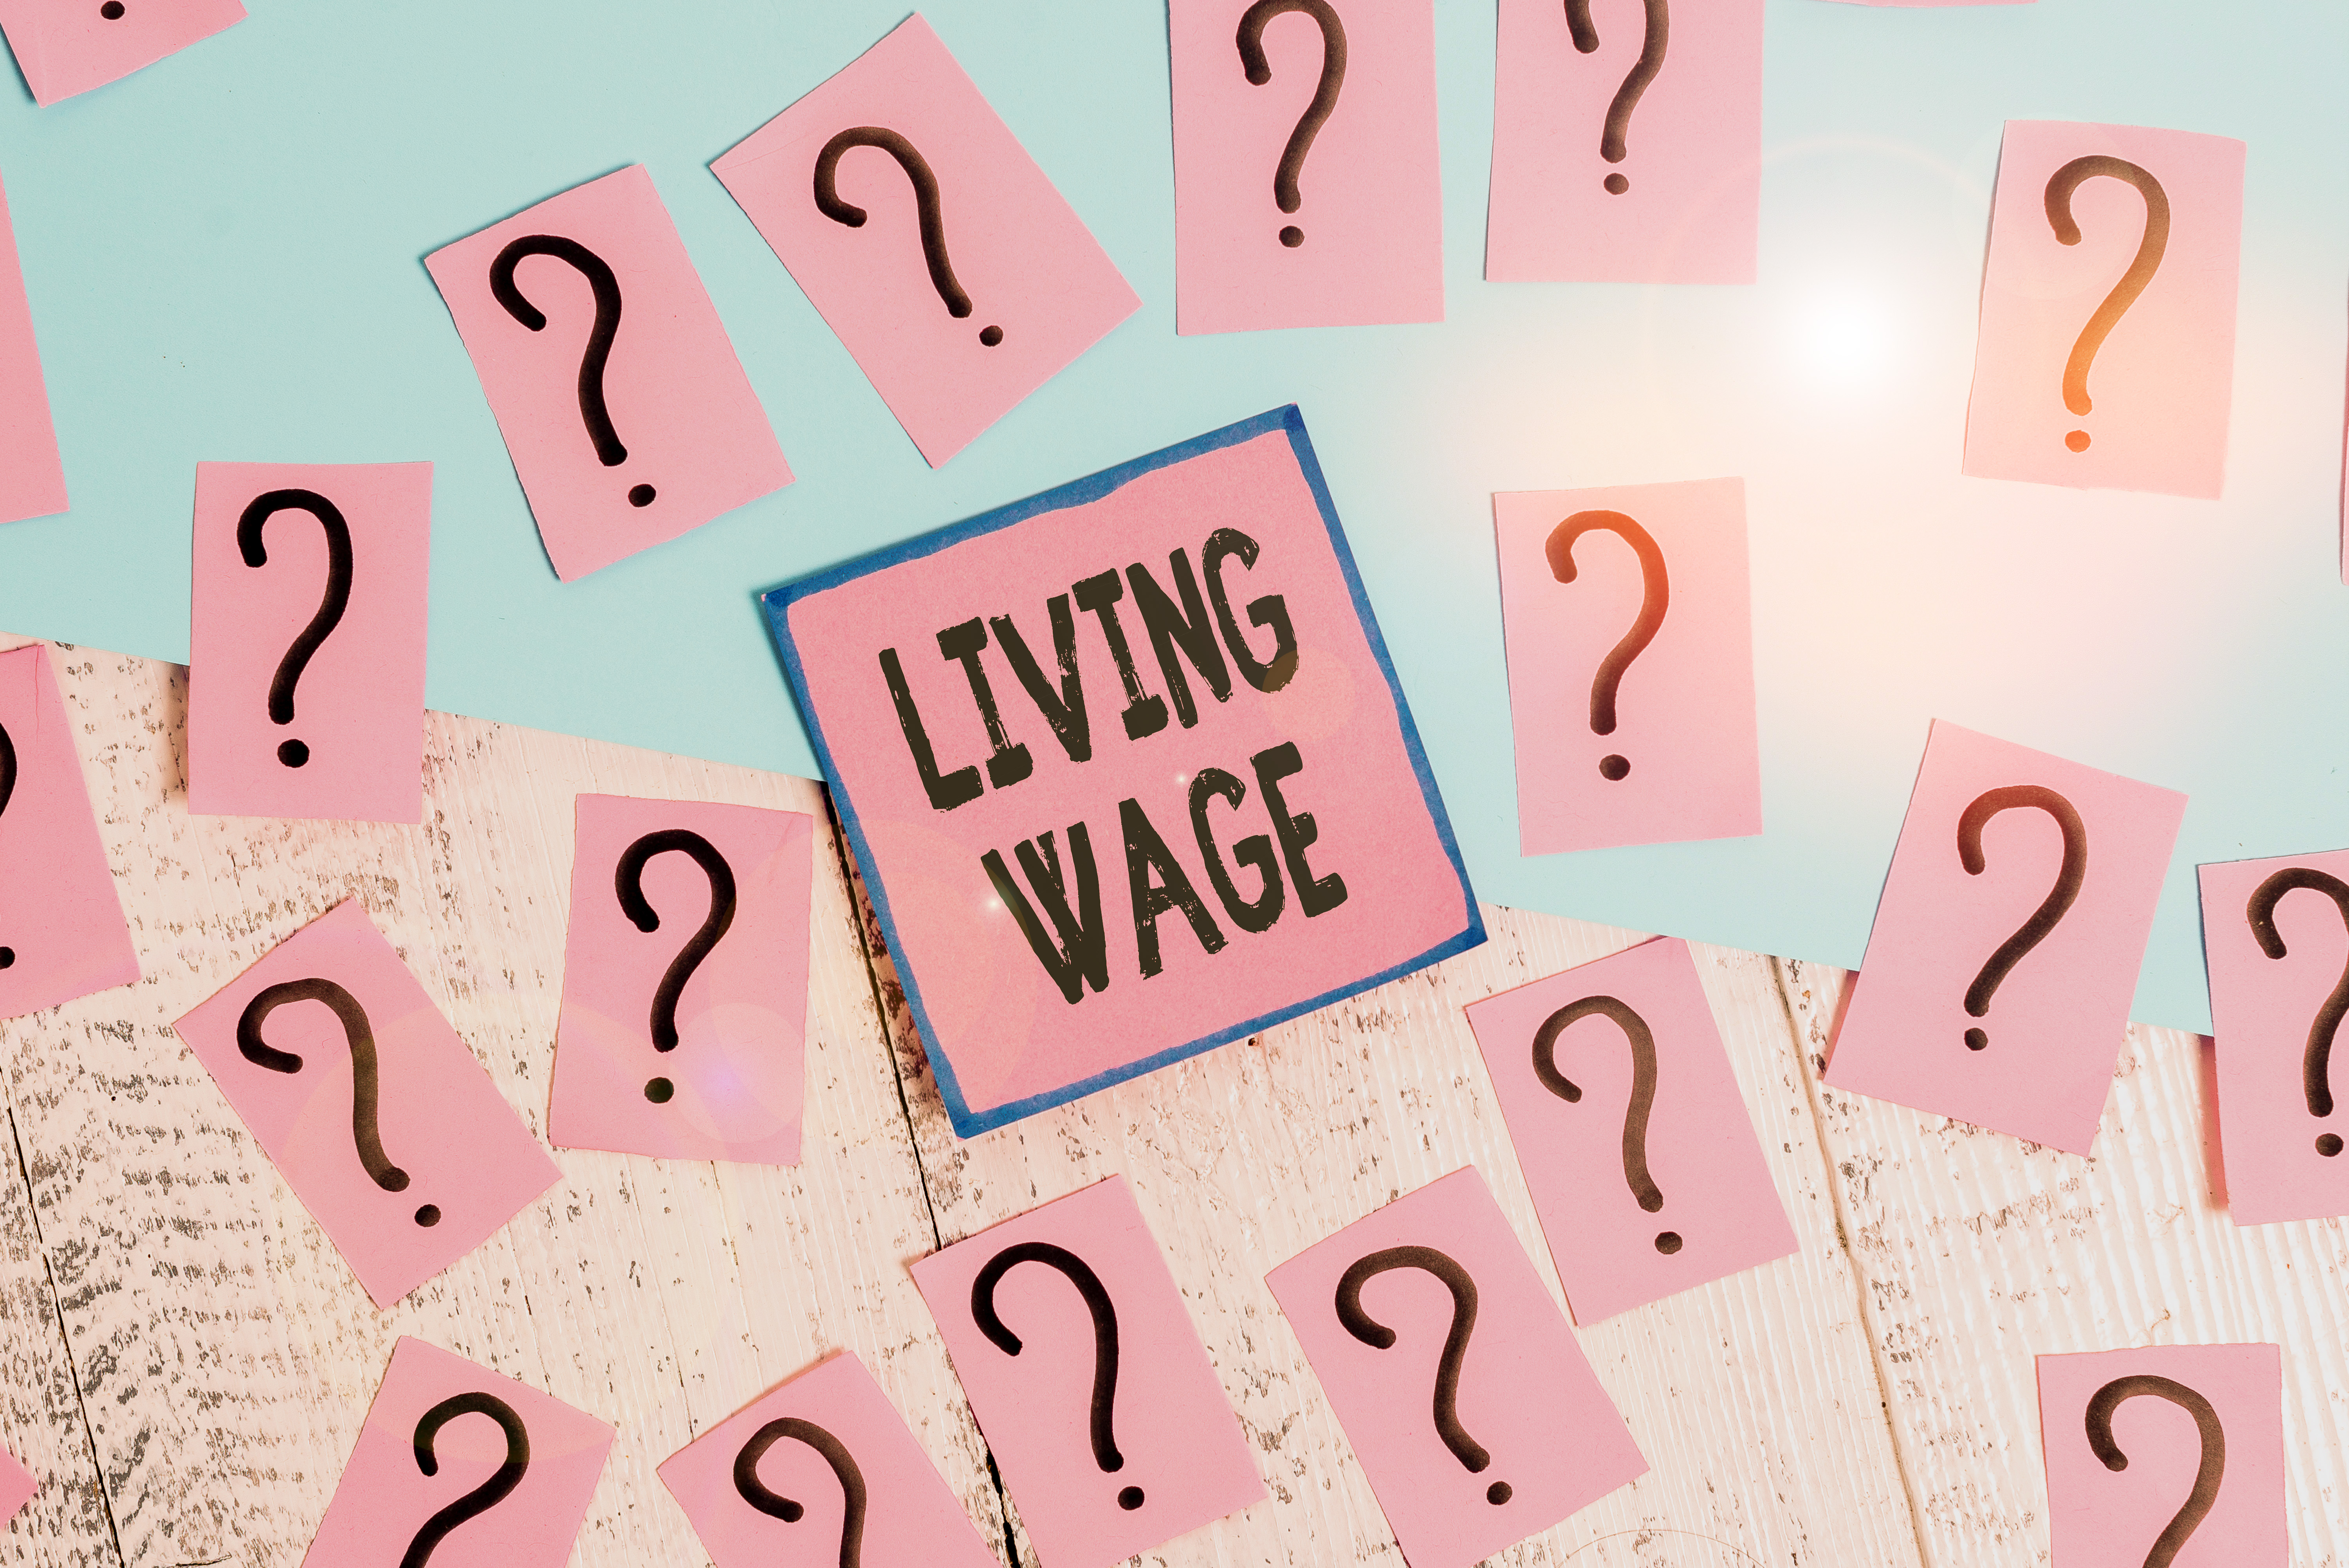 Should Community Banks and Credit Unions Pay a Living Wage?